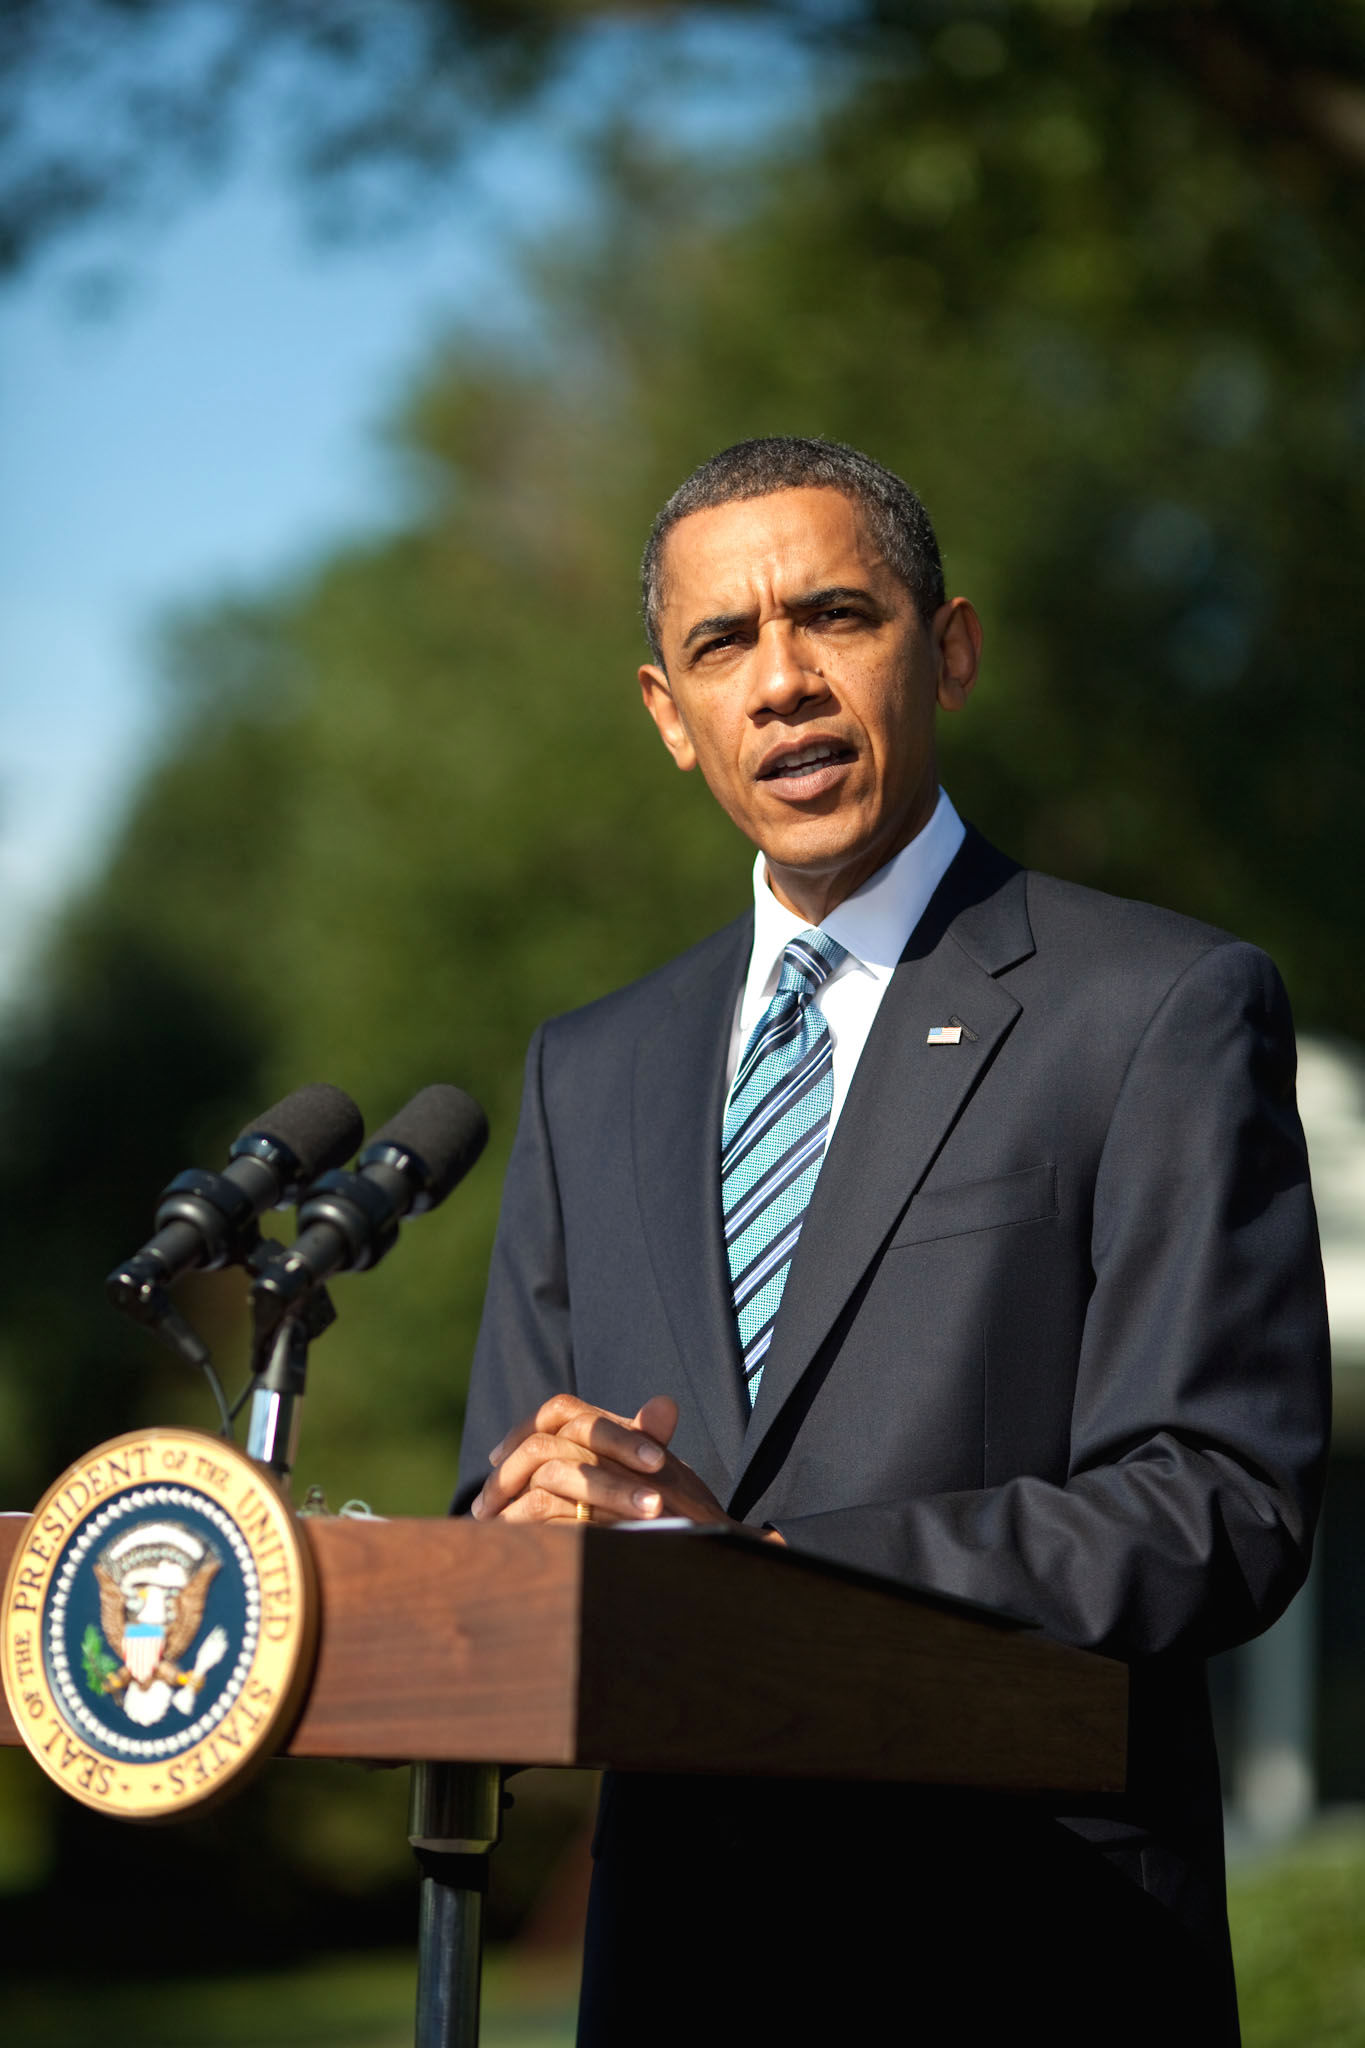 President Obama Commends Congress for Finalizing Wall Street Reform Bill